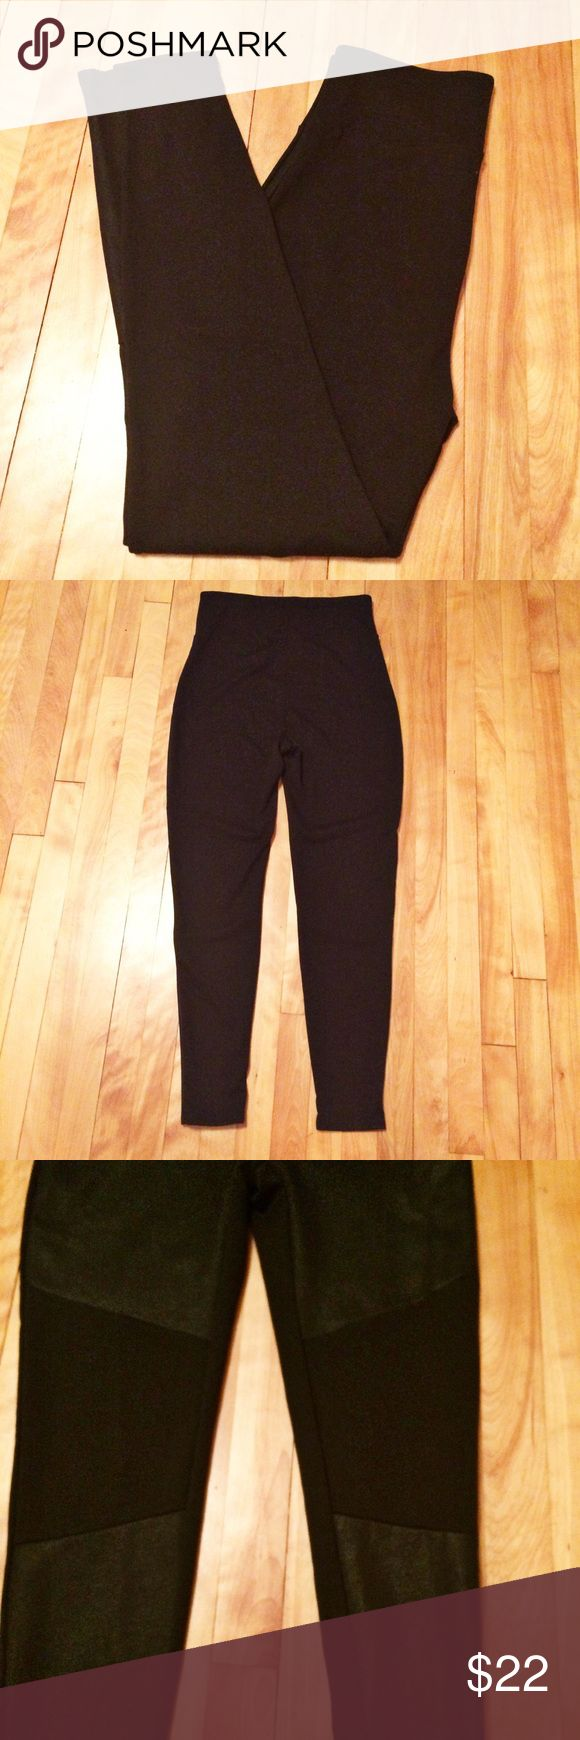 """Assets by Spanx Two Tone Structured Moto Leggings Waist 29"""" (unstretched) Inseam 28""""  Body: 70% Polyester 26% Rayon 4% Spandex  Waist Lining: 80% Nylon 20% Spandex  Thank you for looking!  May require pressing or steaming upon arrival     476 Assets By Spanx Pants Leggings"""